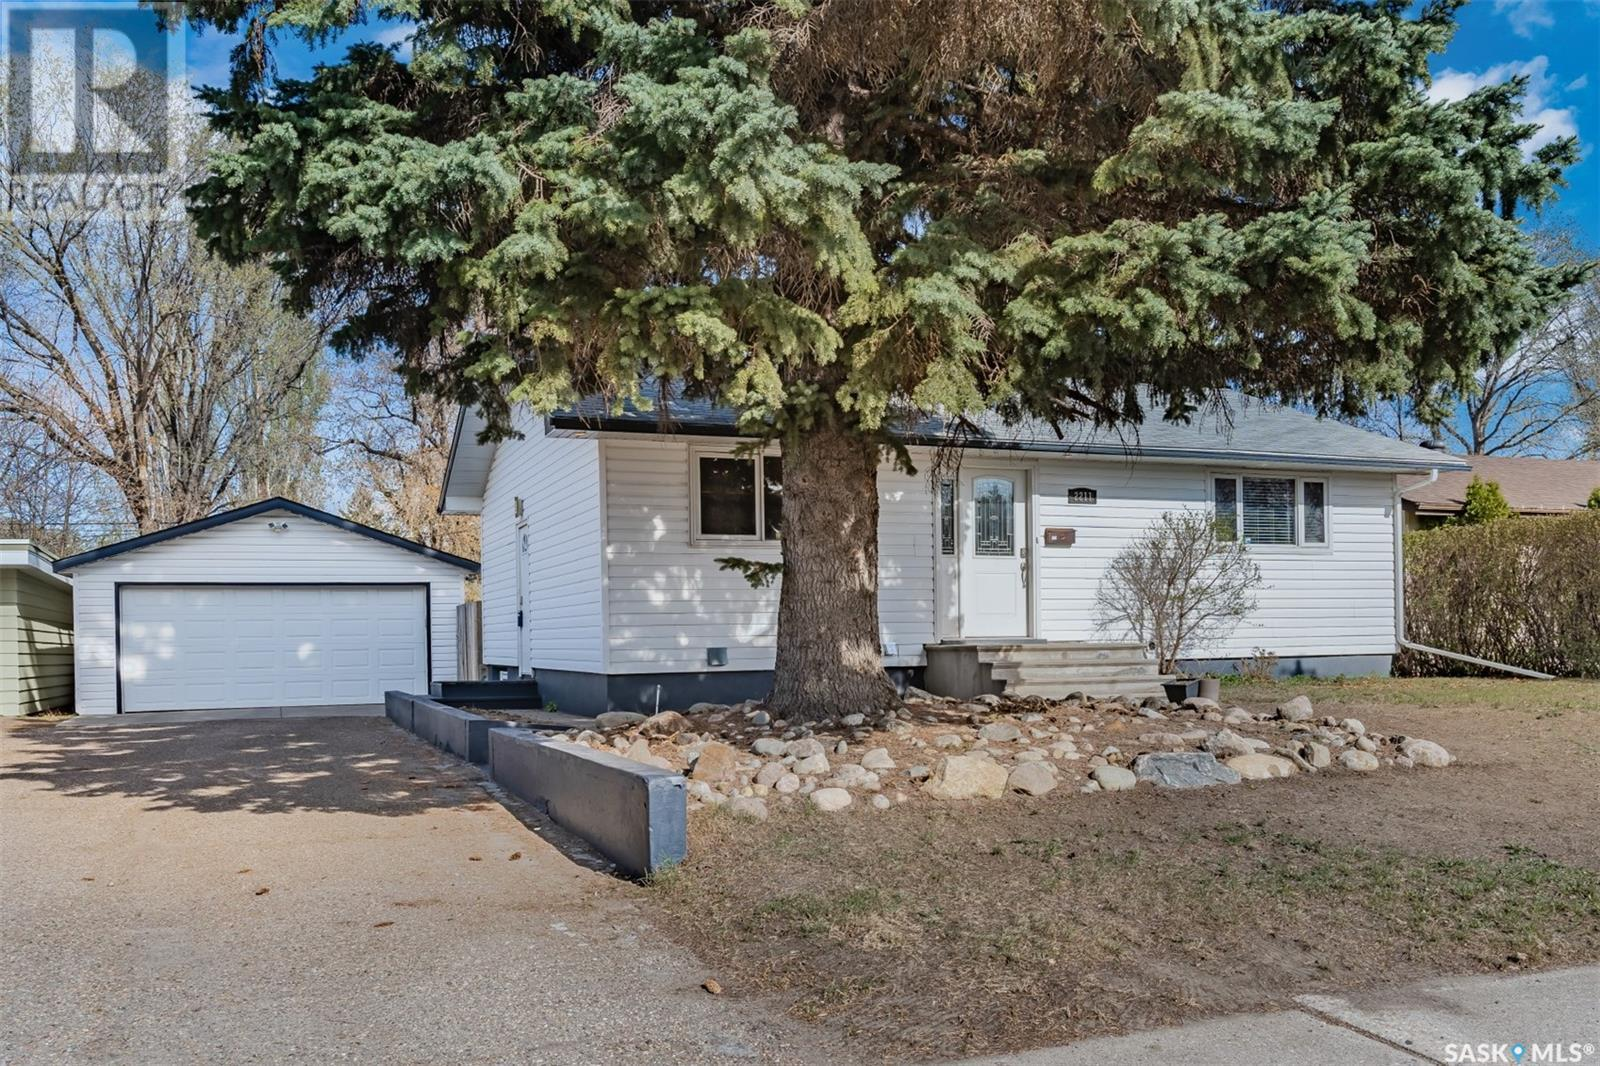 2211 Wiggins AVE S, Saskatoon, Saskatchewan, Canada S7J1W6, 2 Bedrooms Bedrooms, Register to View ,2 BathroomsBathrooms,House,For Sale,SK854547